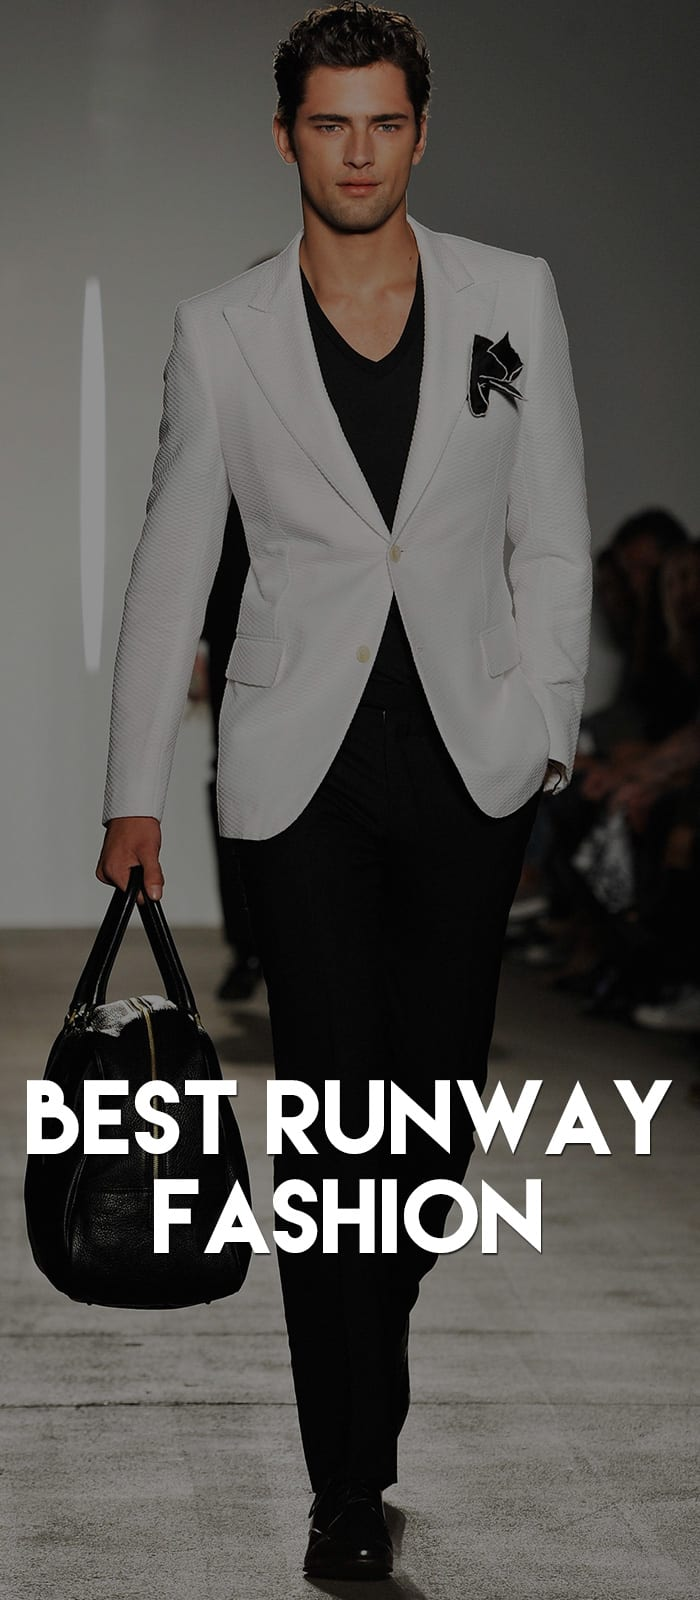 Best Runway Fashion